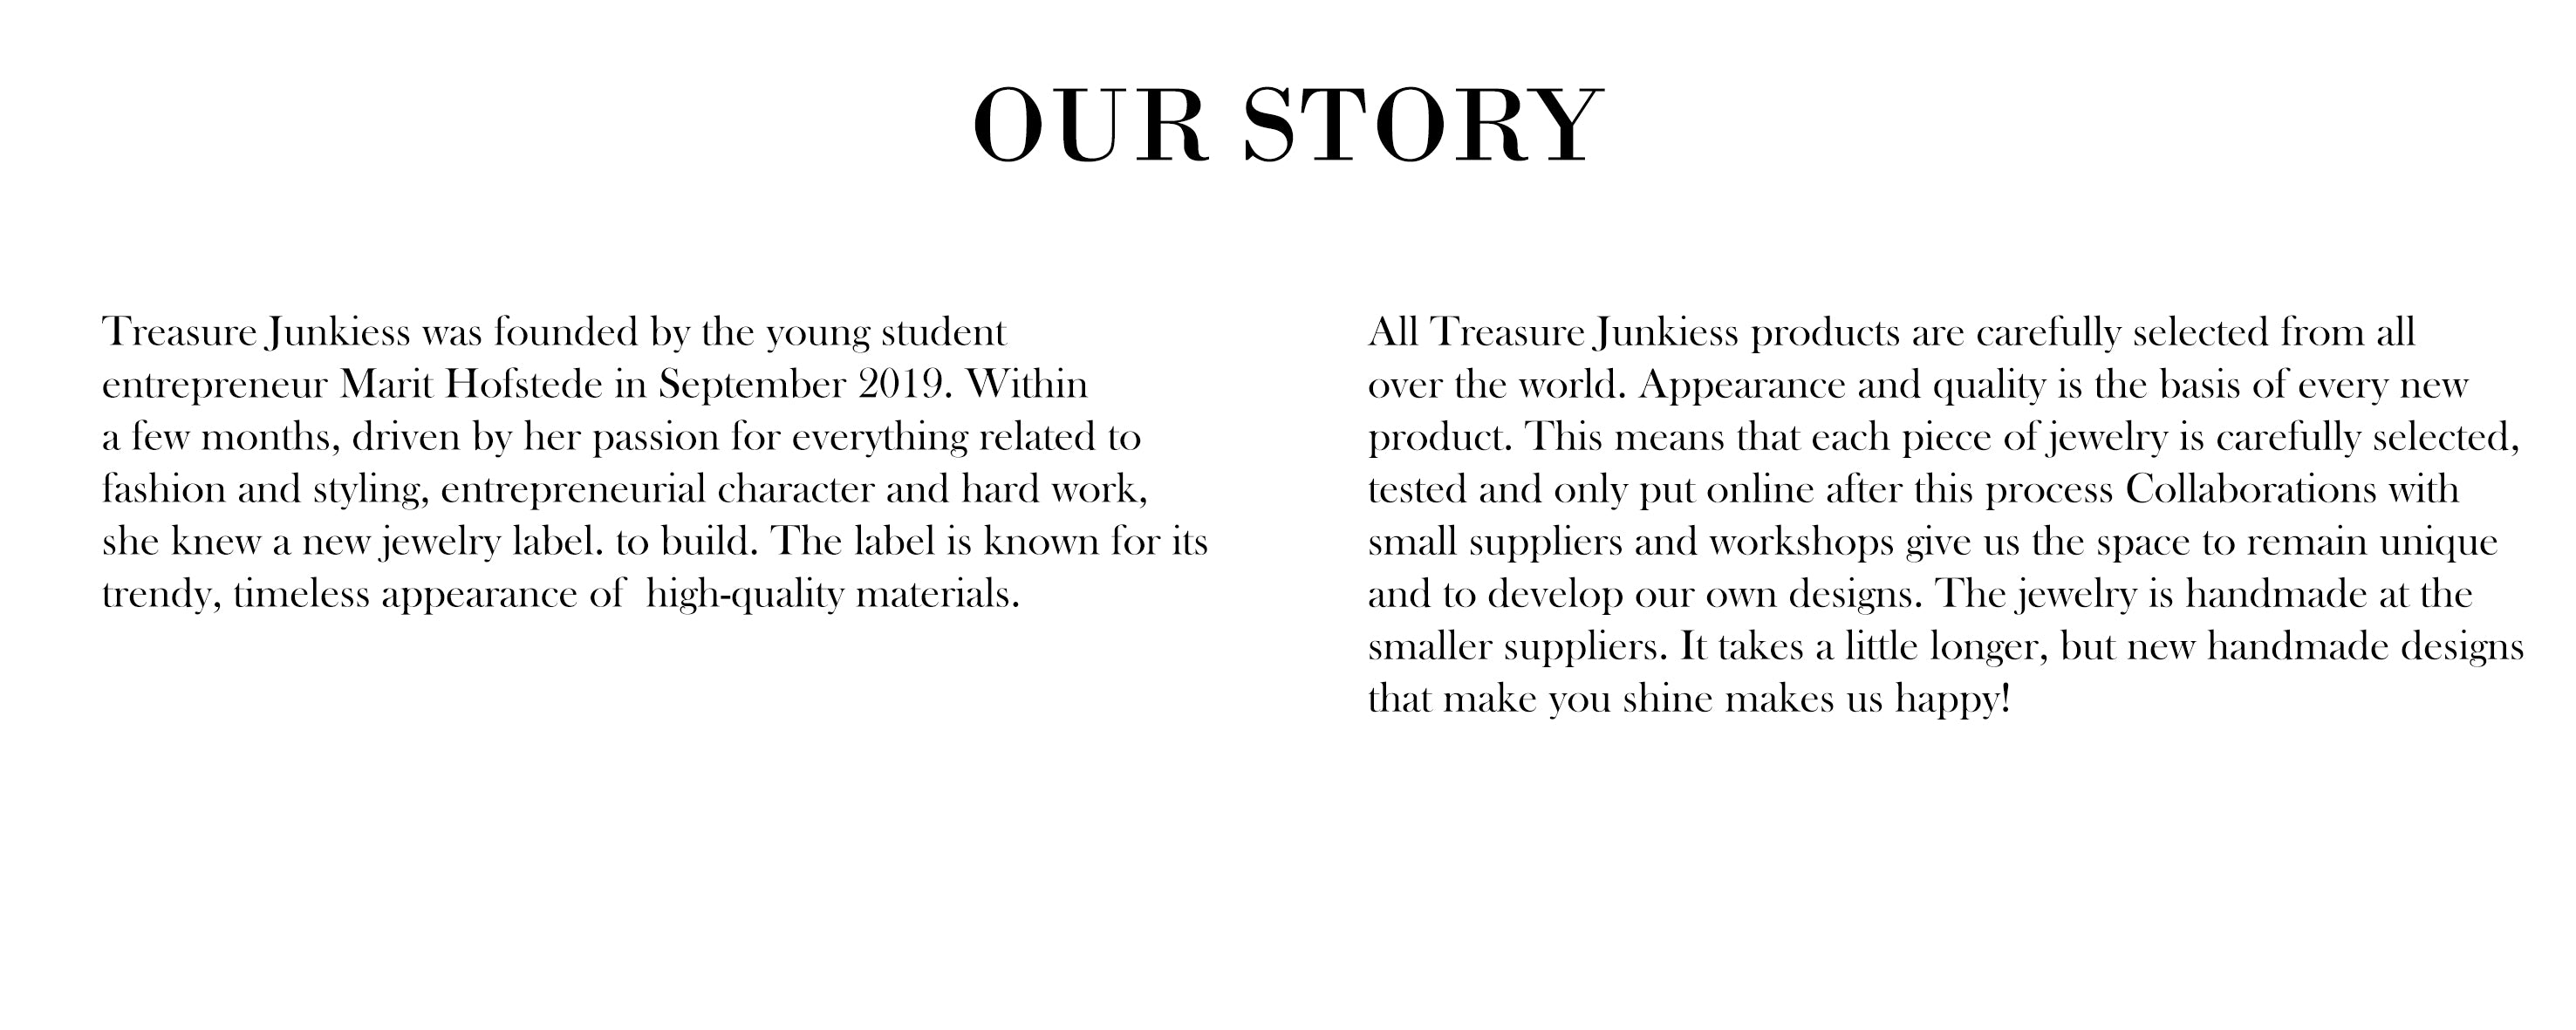 About our story